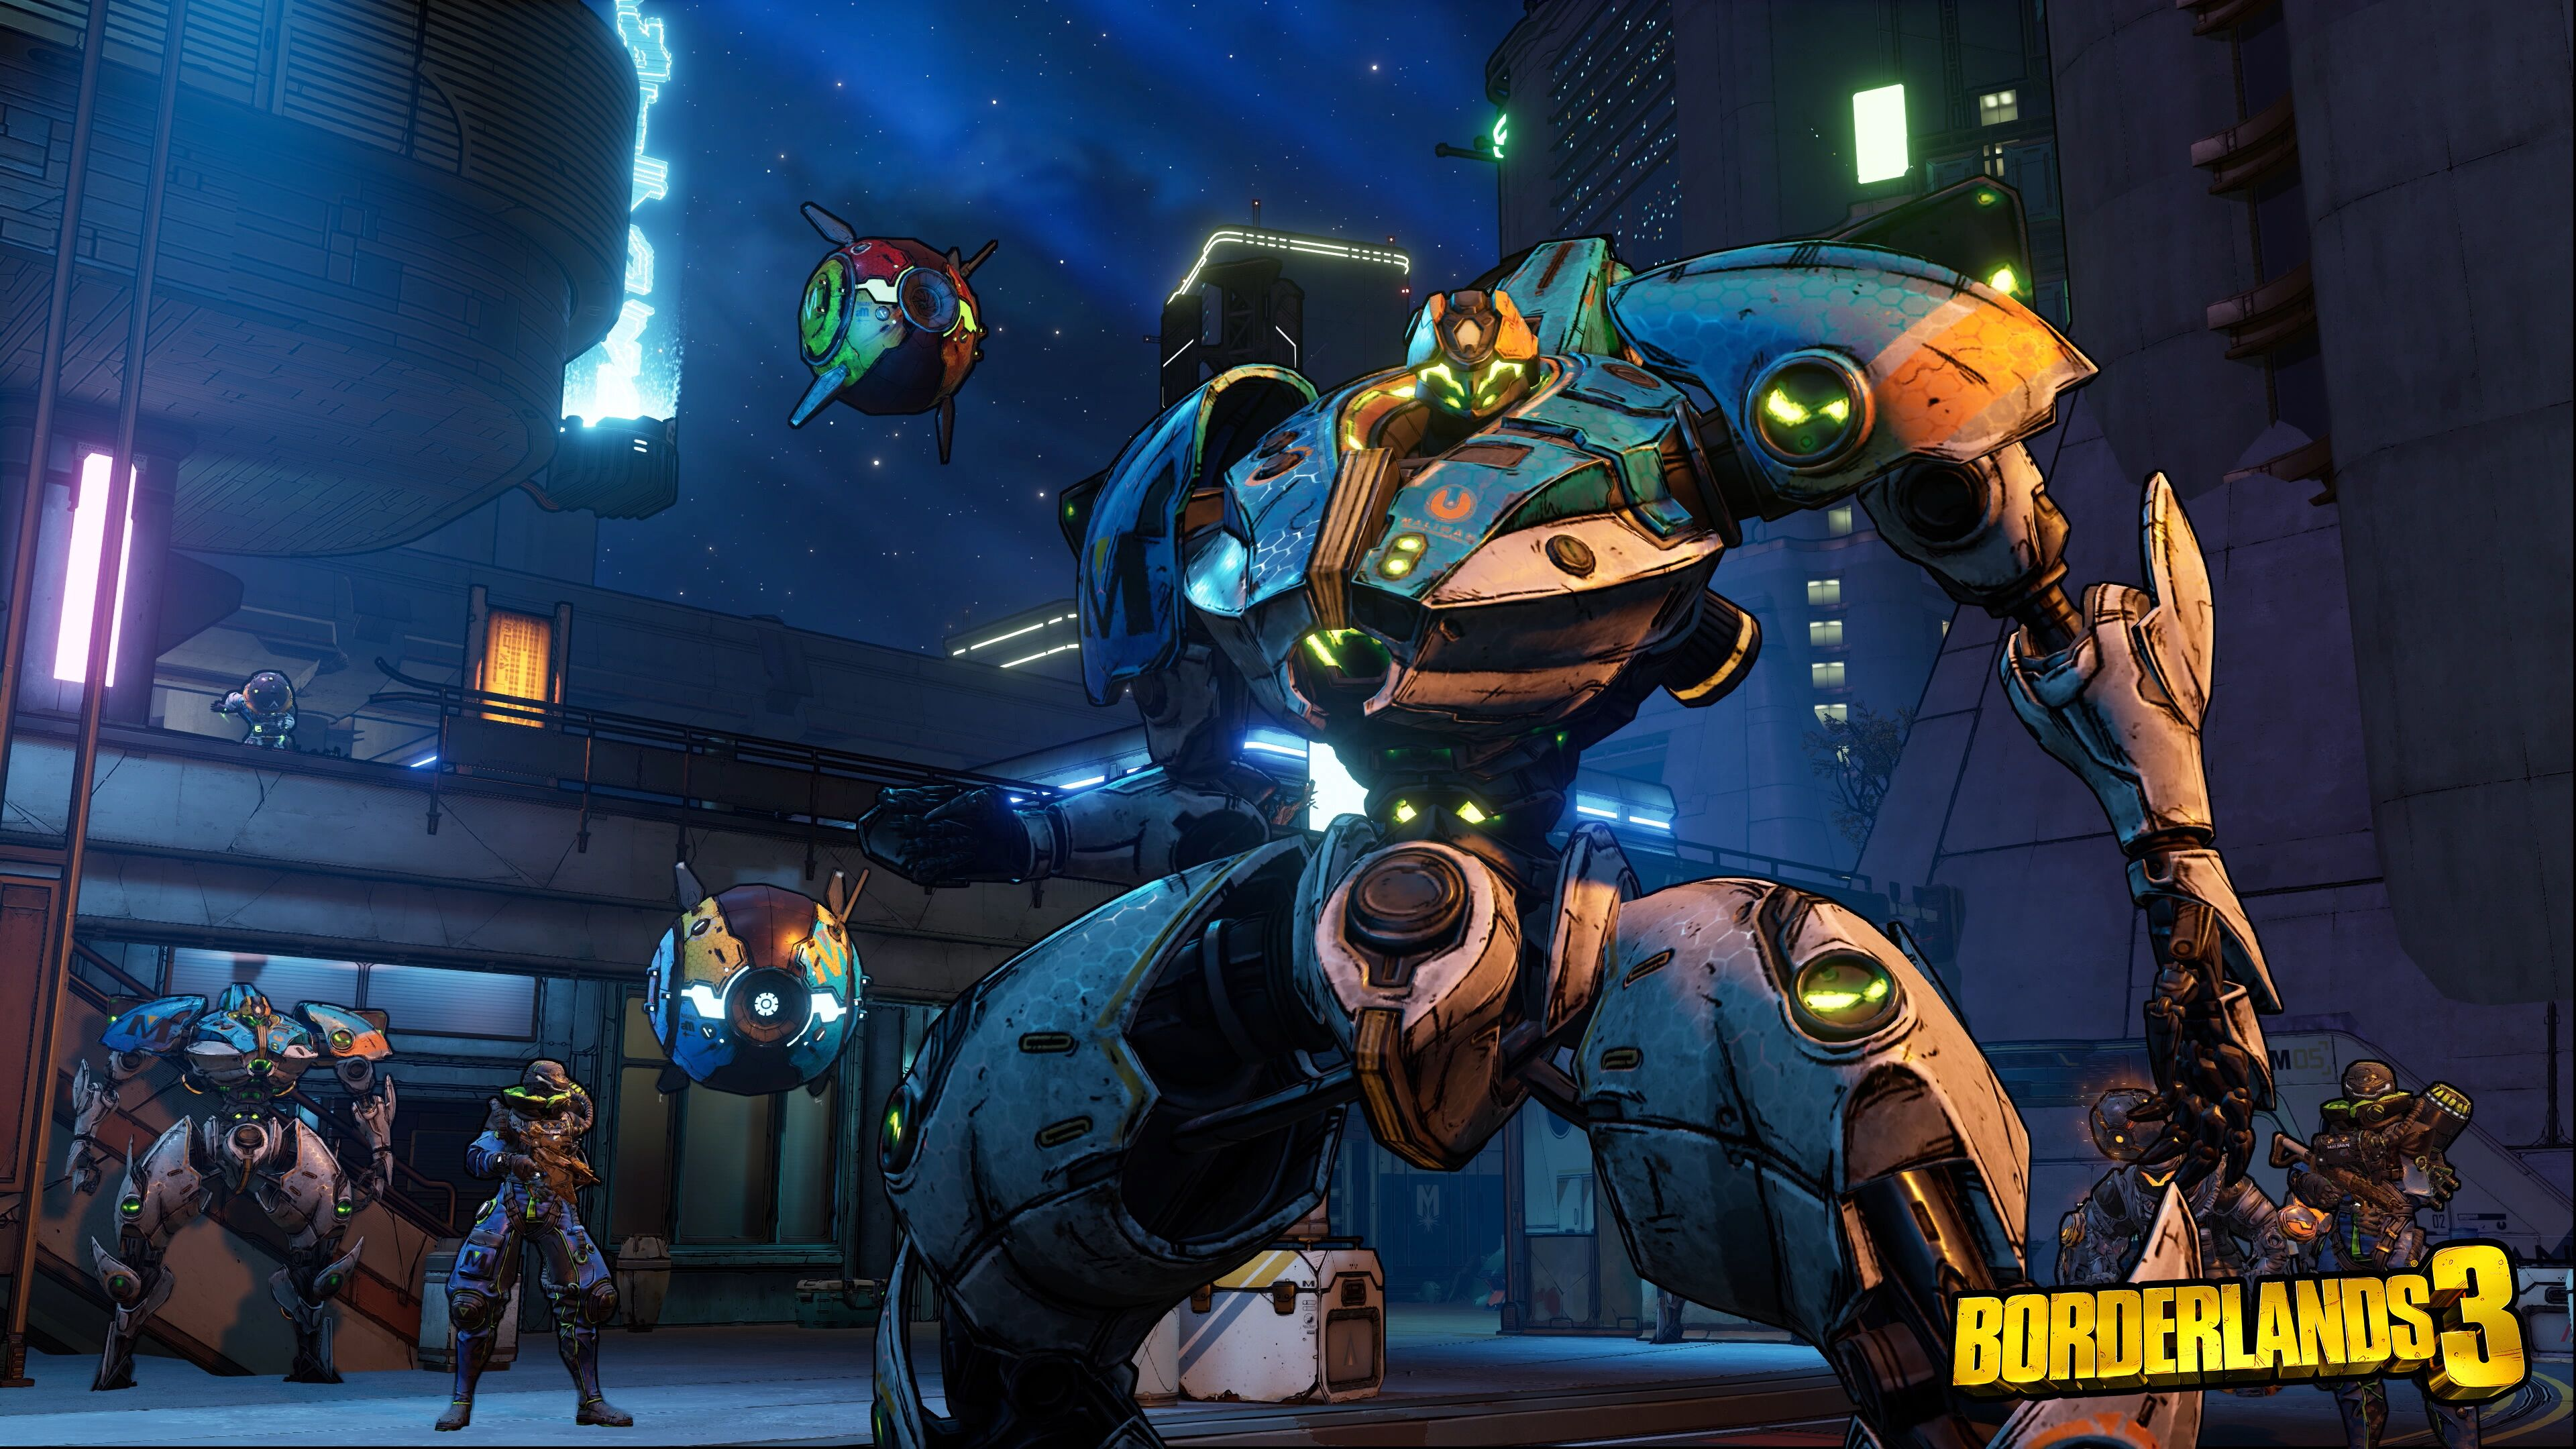 Borderlands 3 hands-on gameplay reveal